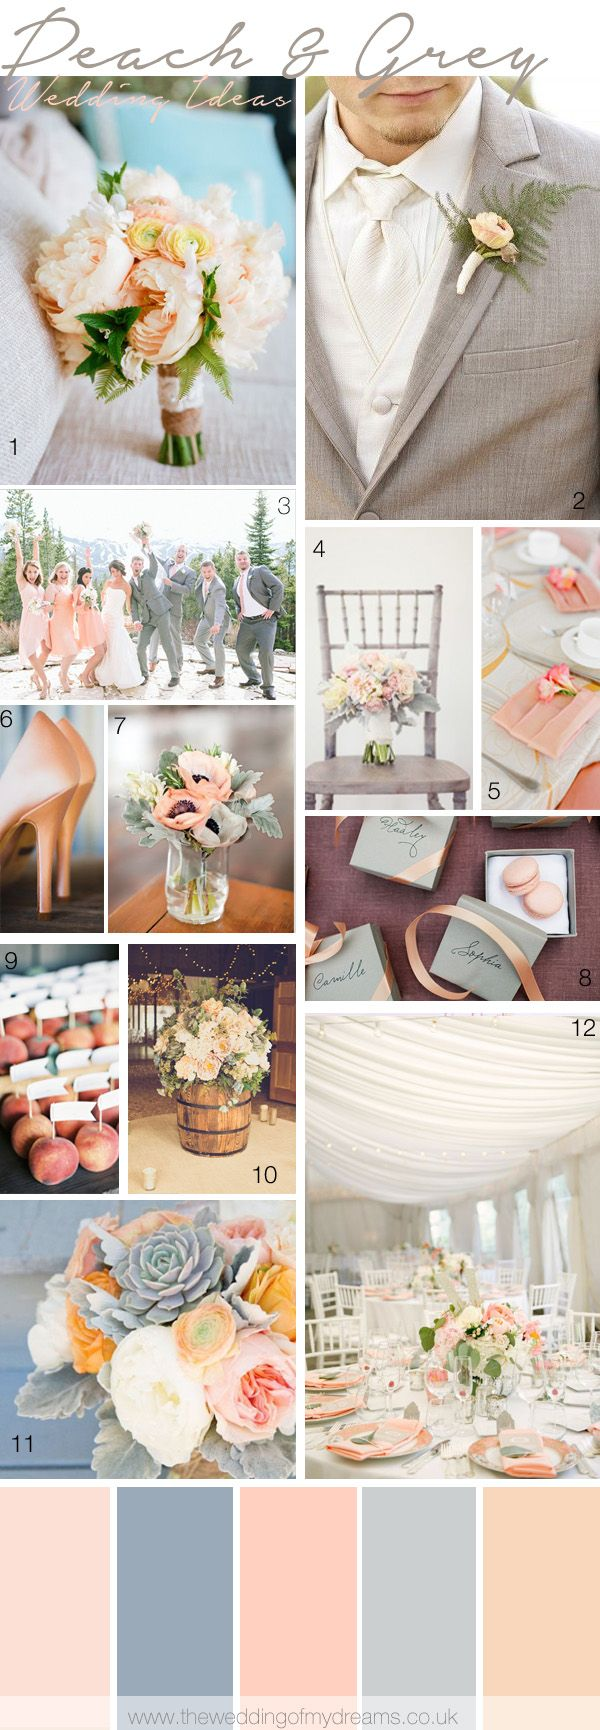 Wedding decoration ideas peach  Peach And Grey Wedding Inspiration u Ideas  Grey weddings Peach